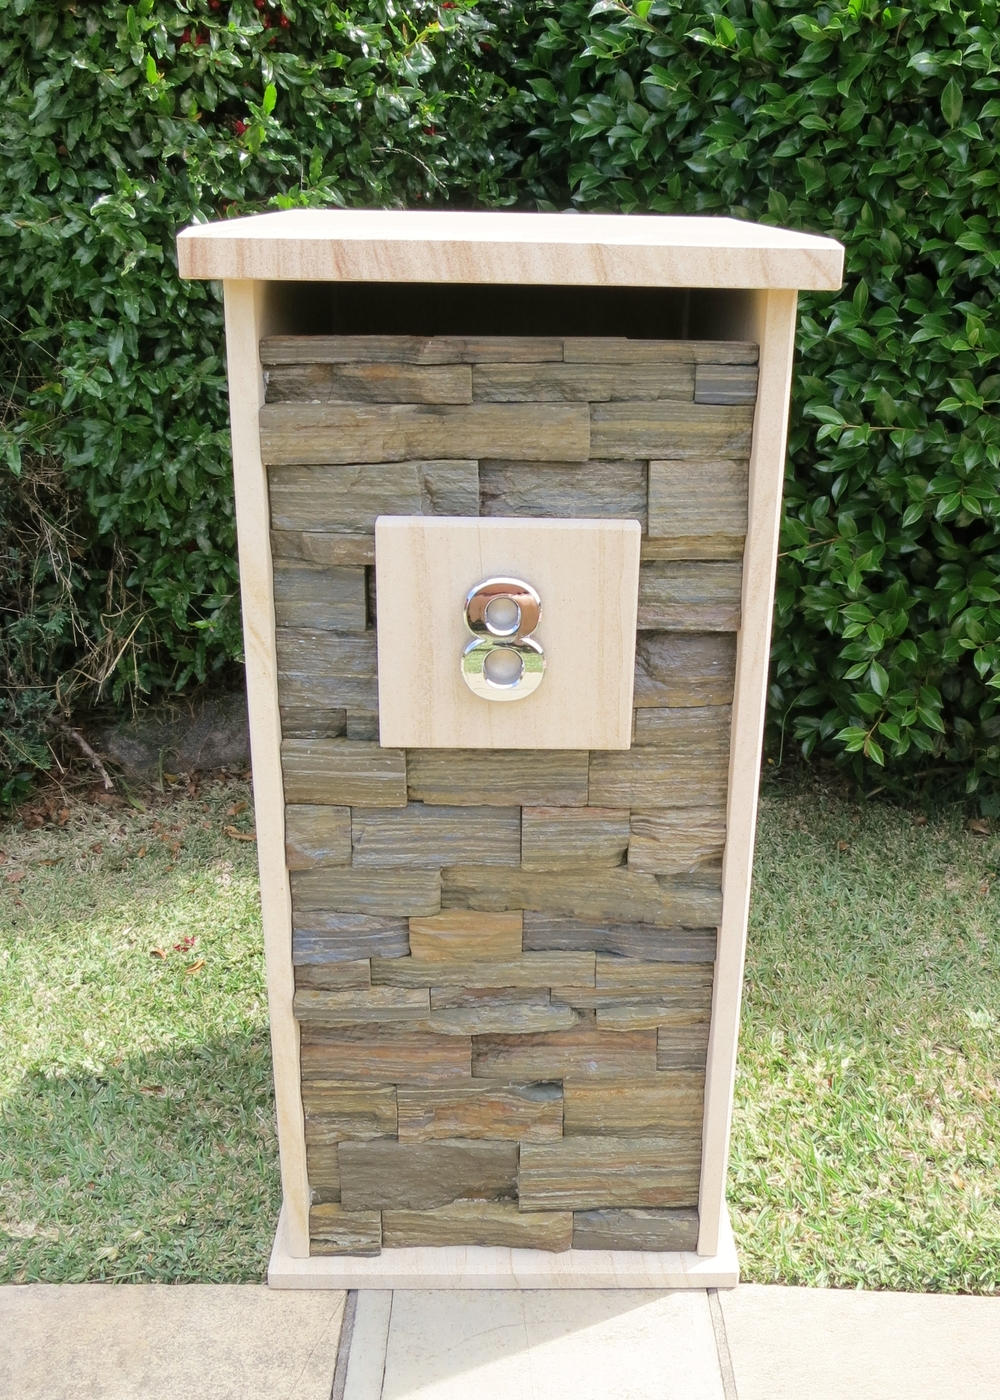 97. Customized letterbox extra large envelops. 380x325mm floor size inside. Outside dimentions 430x410x850mm. $710